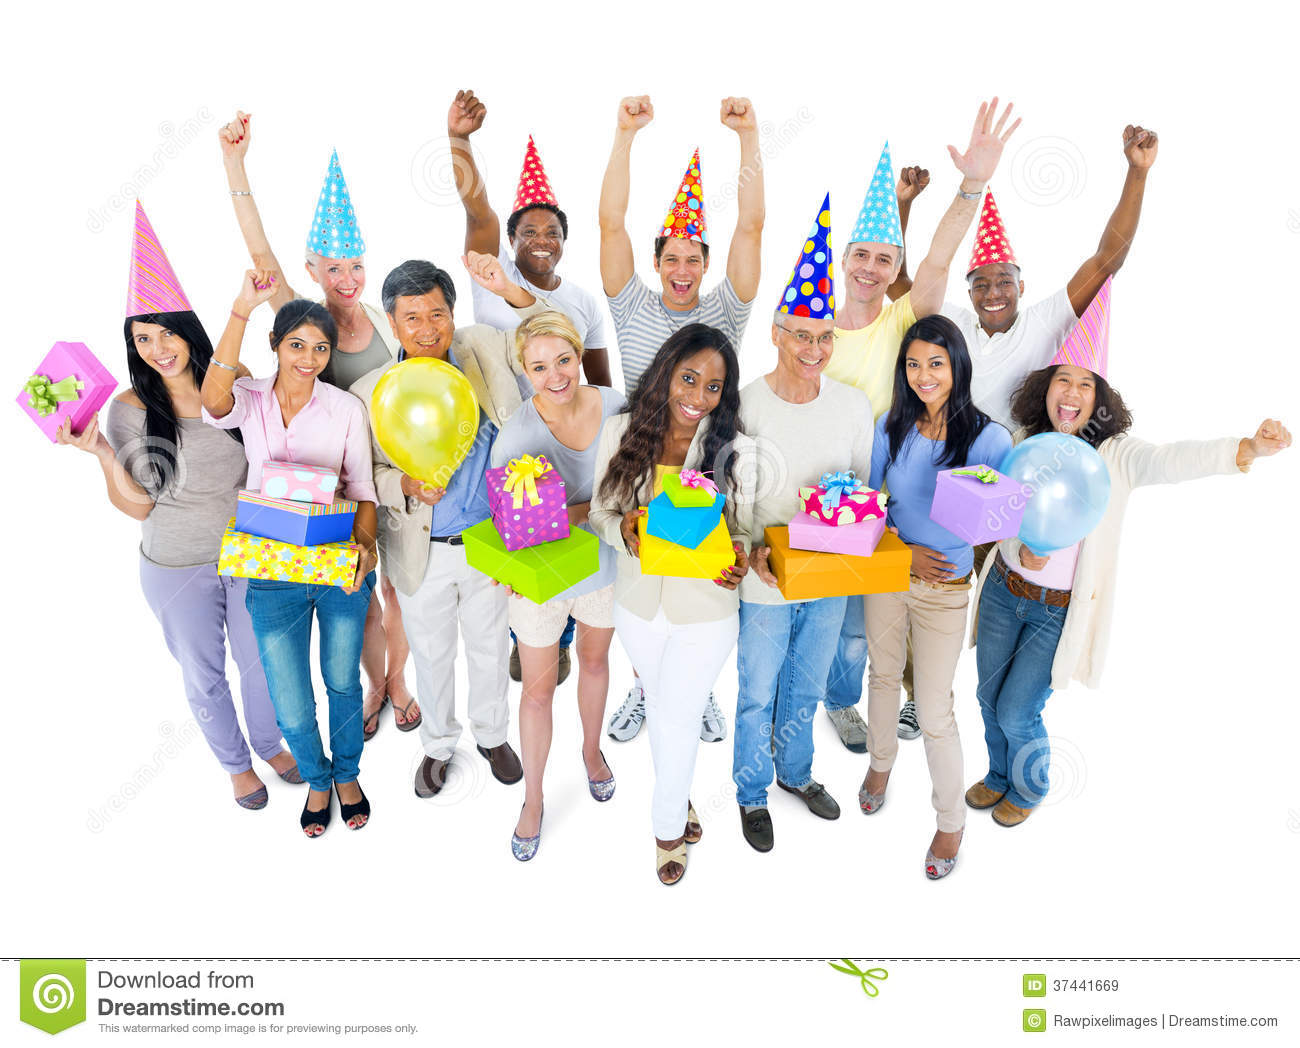 Group of Diverse People Enjoying the Party